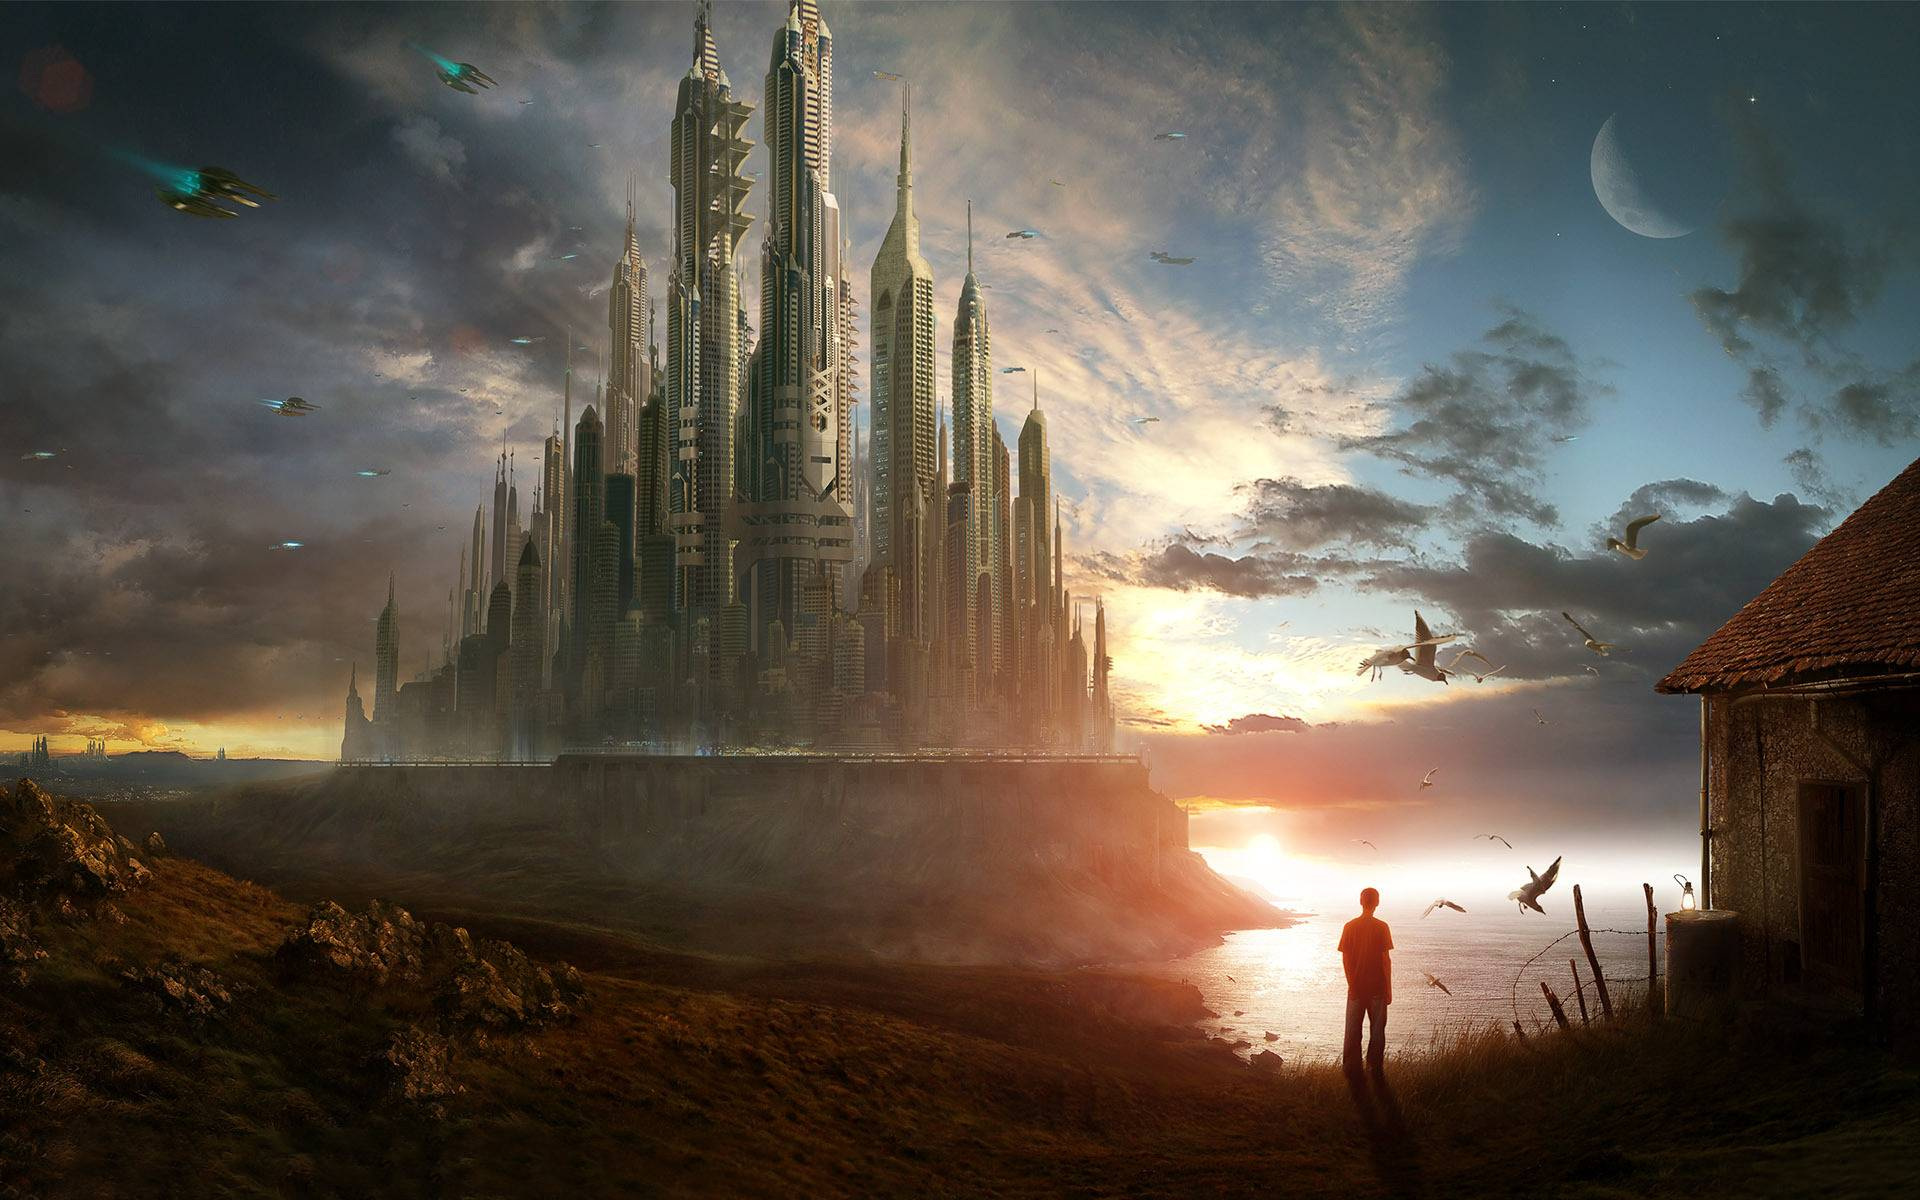 Science-Fiction - Großstadt  Landschaft Wolkenkratzer Science-Fiction Himmel Wallpaper